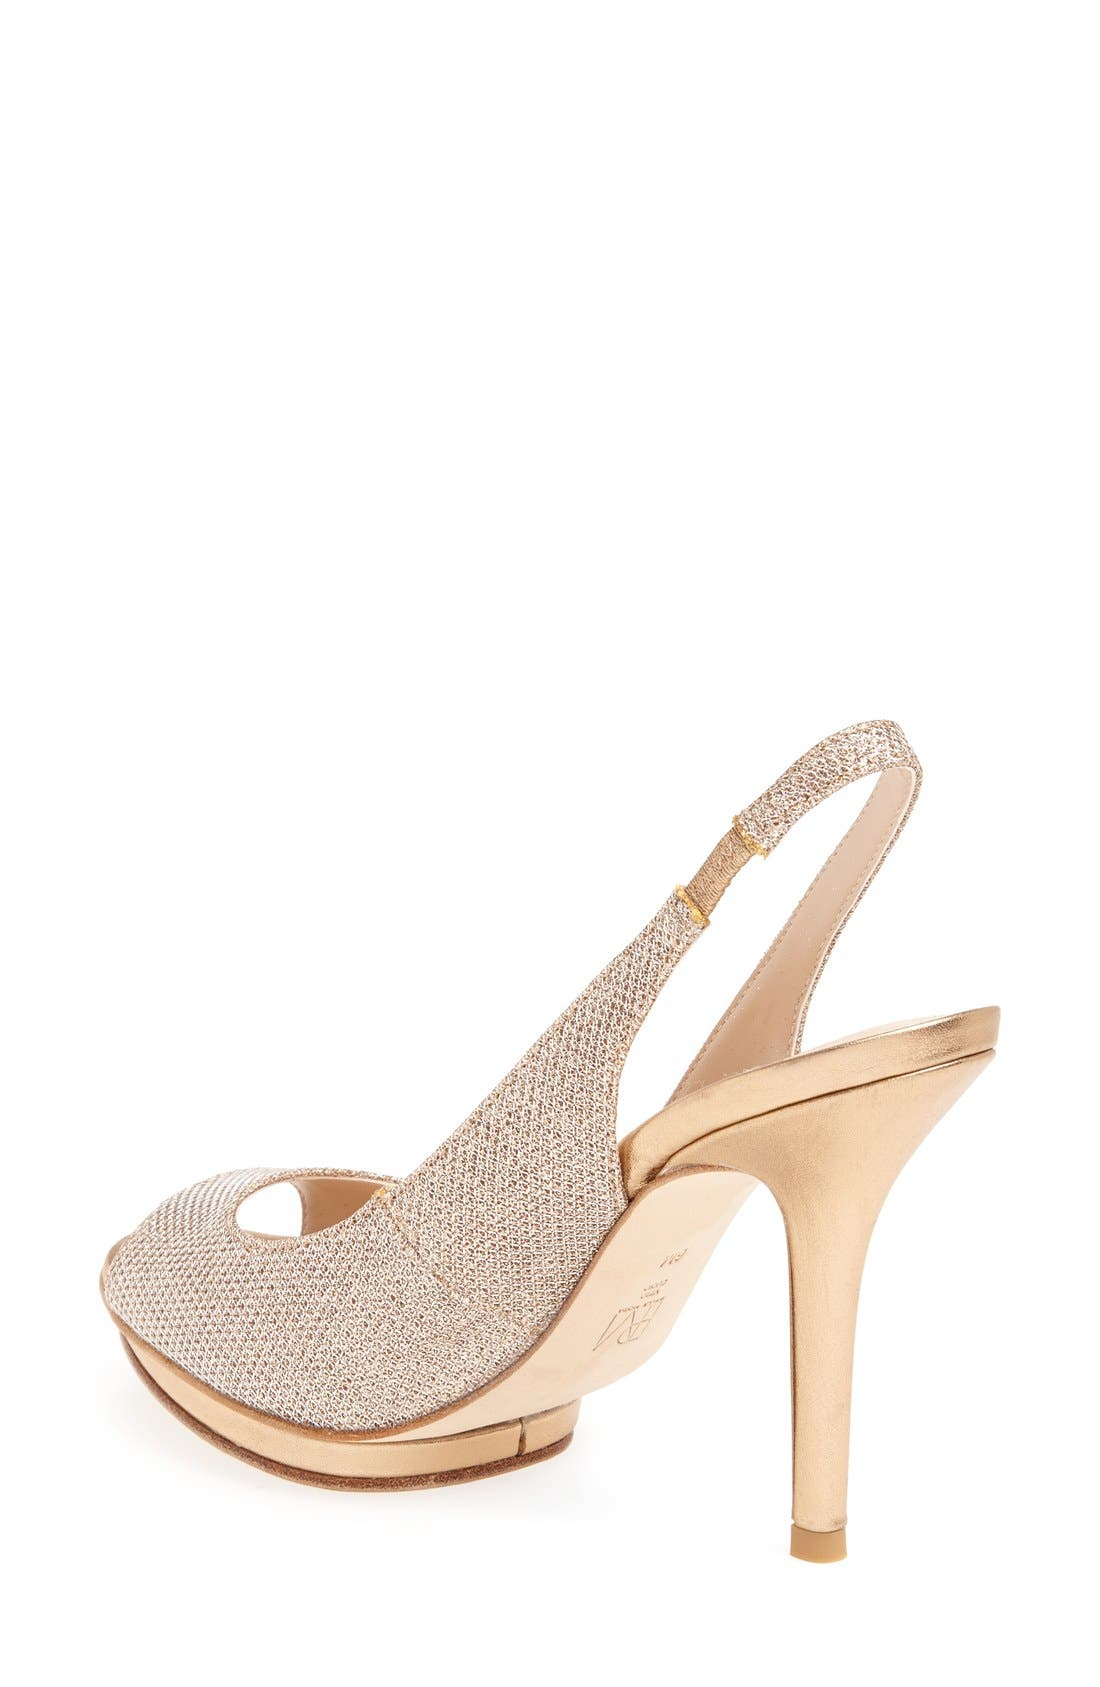 'Rivka' Open Toe Platform Slingback Sandal,                             Alternate thumbnail 8, color,